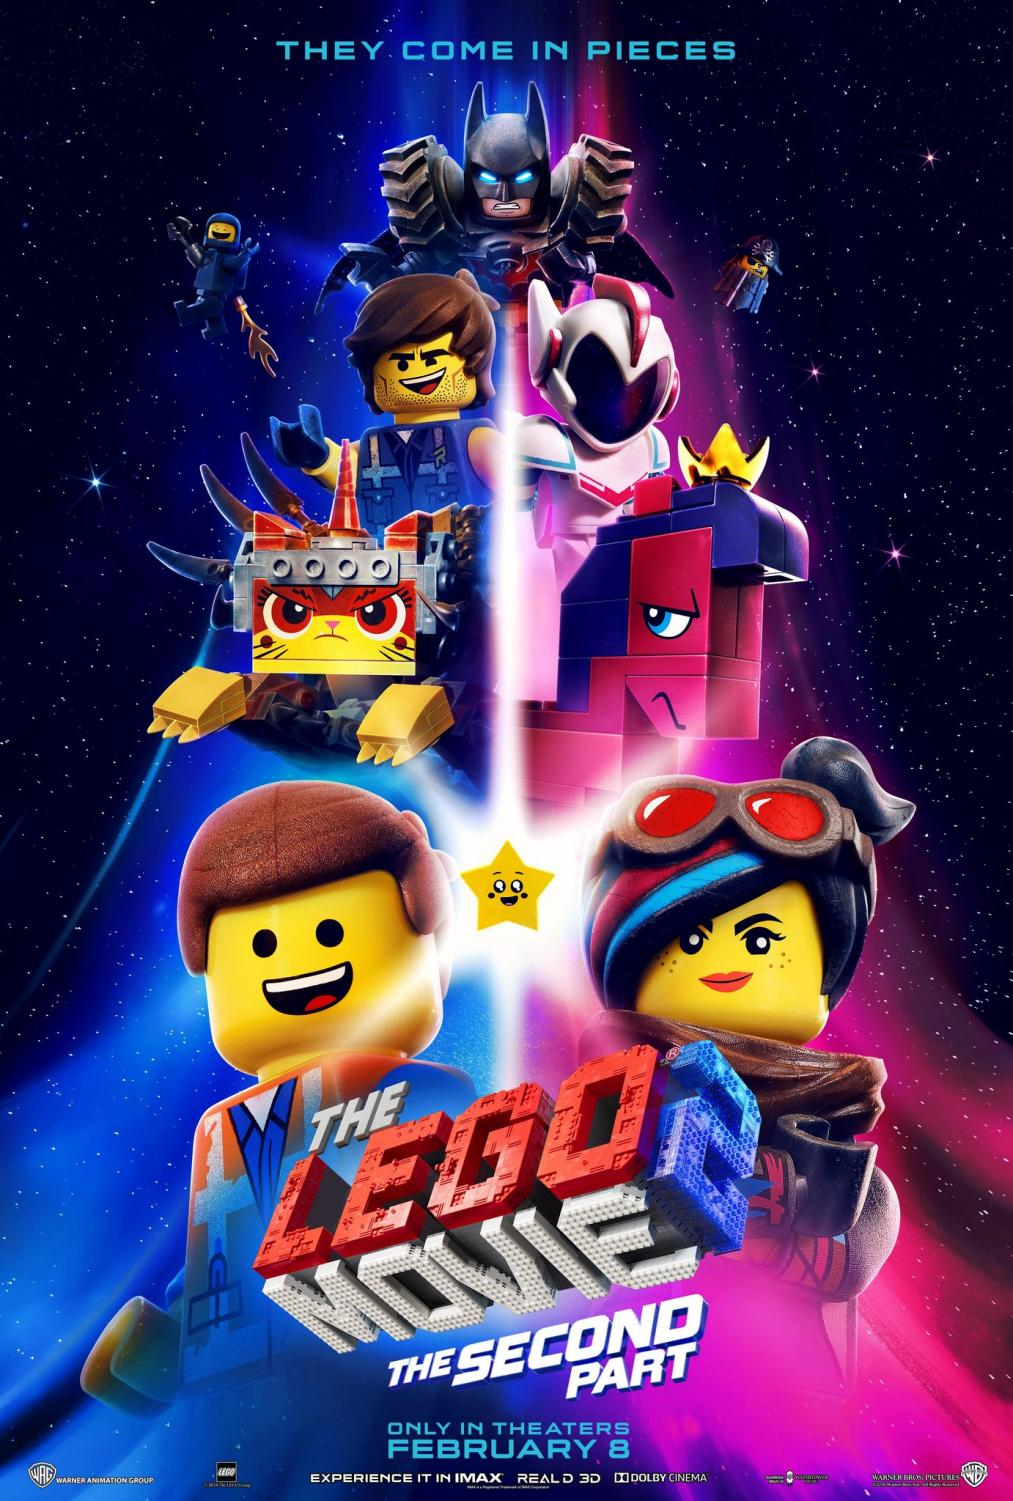 The Lego Movie 2 was released to theatres on Feb. 8. Photo courtesy of IMDB.com